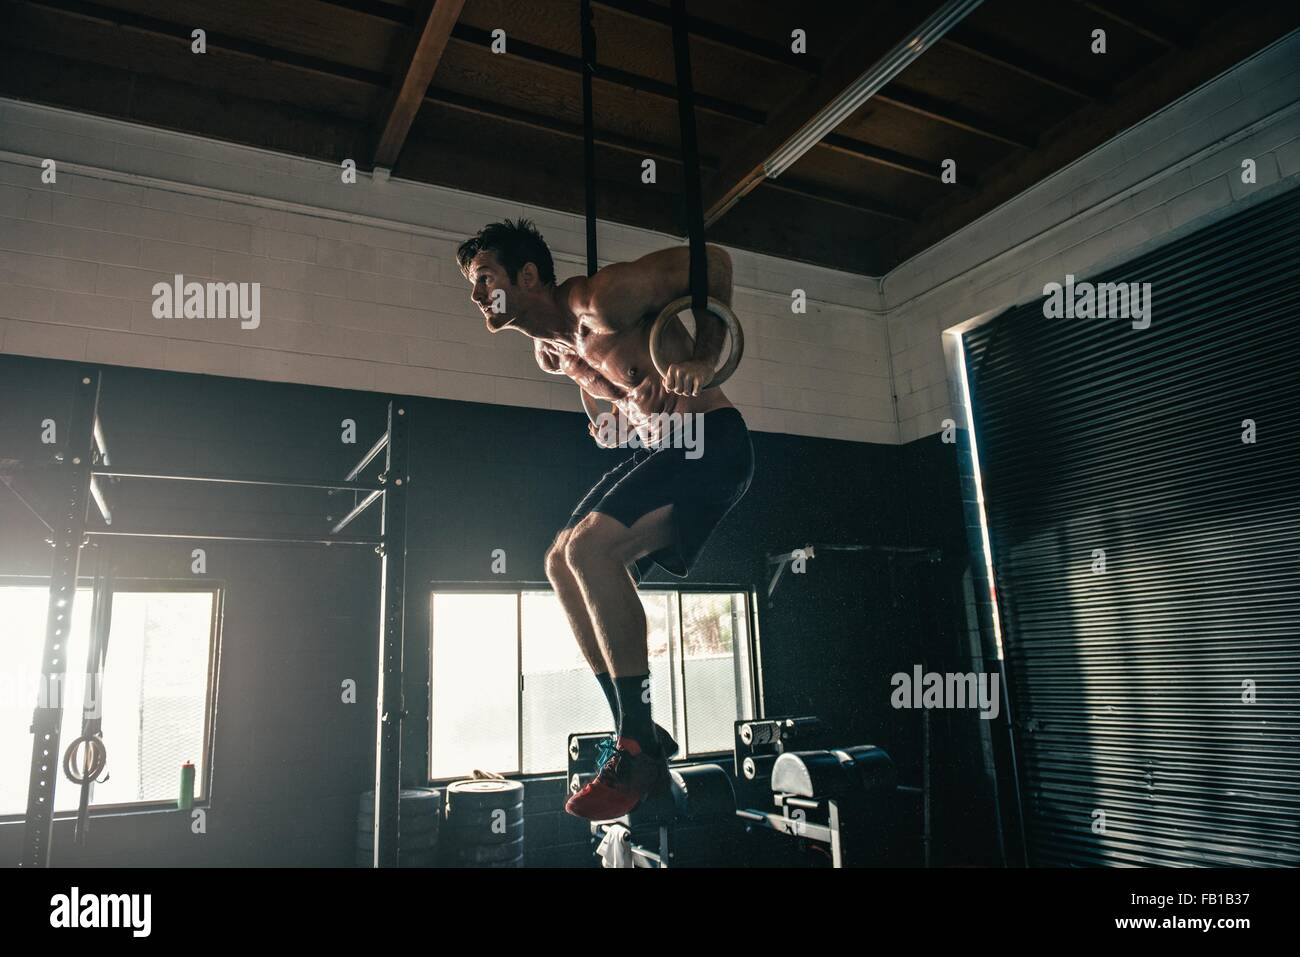 Man poised on exercise rings in gym - Stock Image